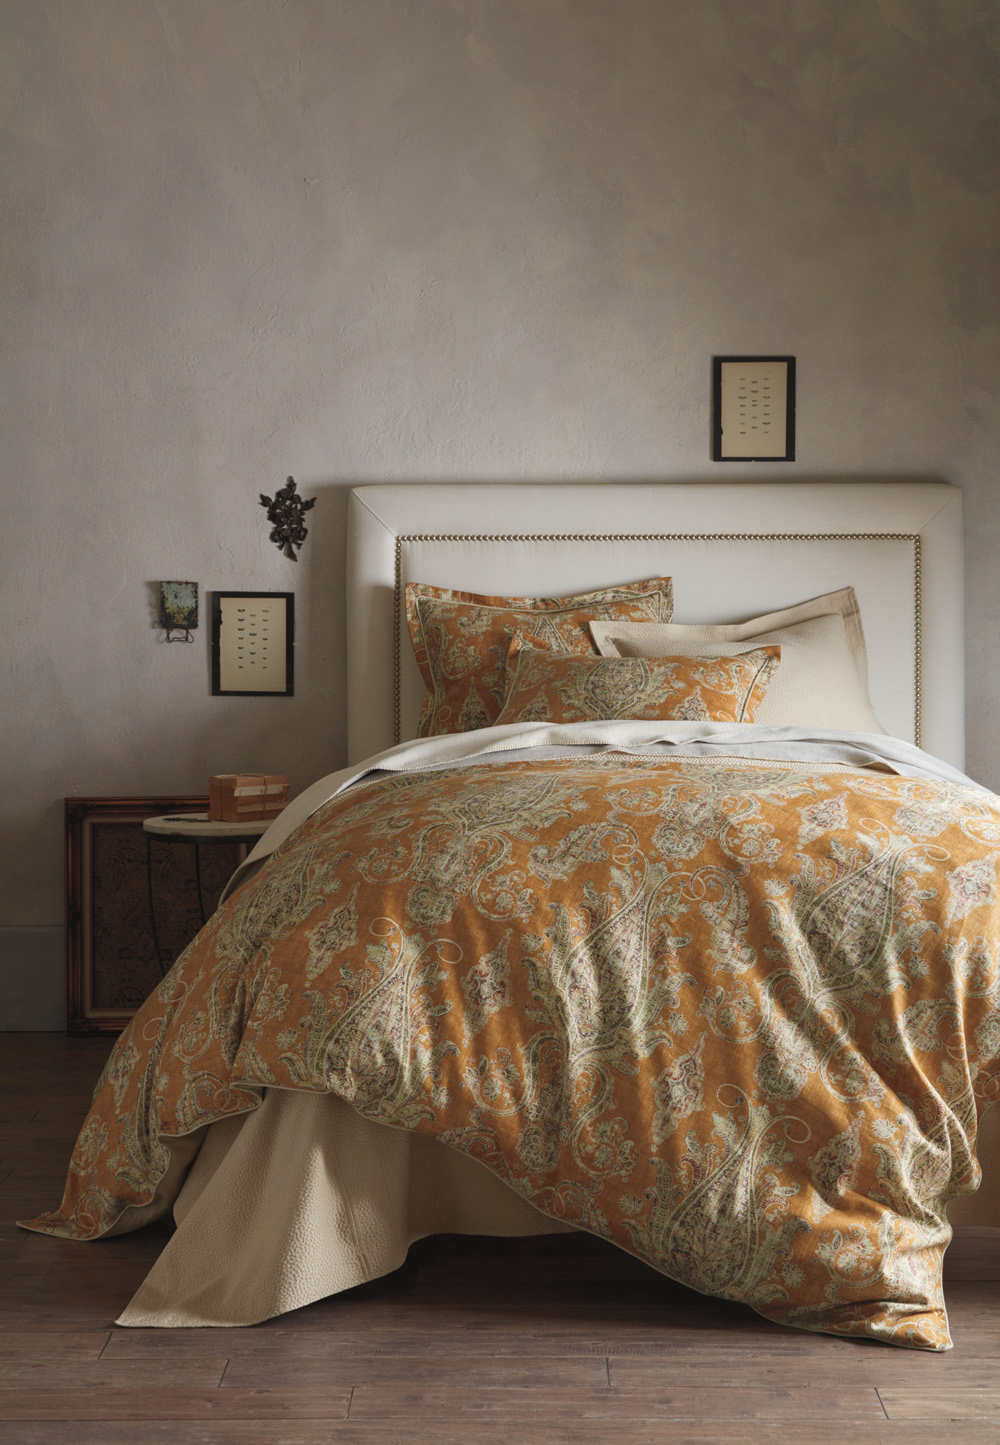 Peacock Alley Provence Bedding Antique Tapestry Inspired